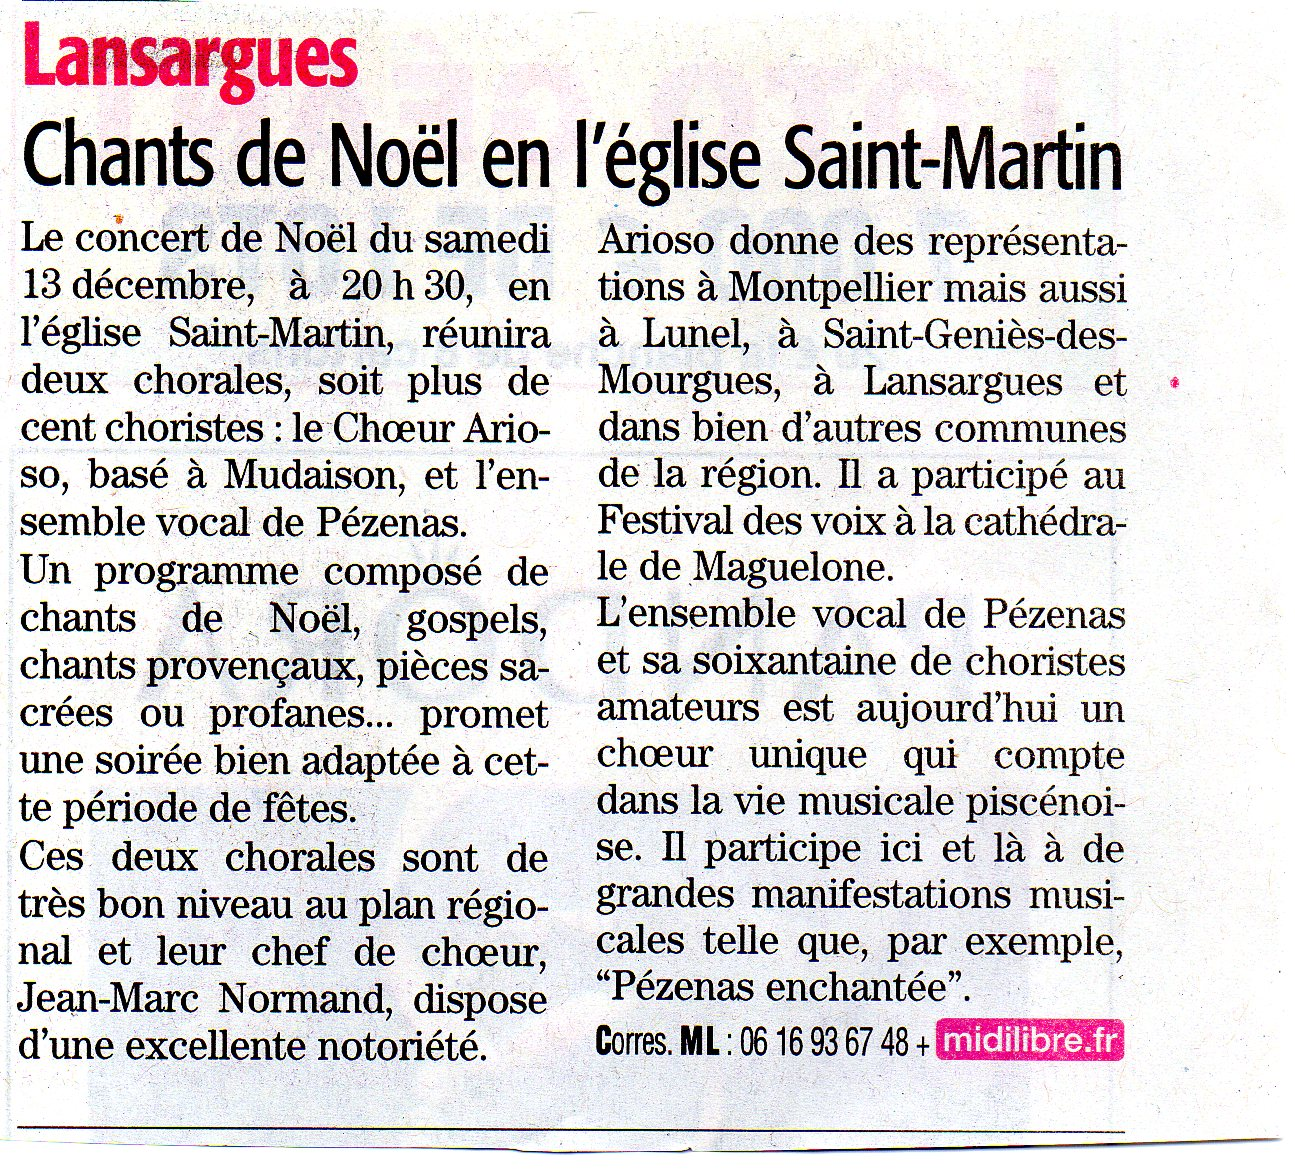 ML Lansargues 3 dec 2014